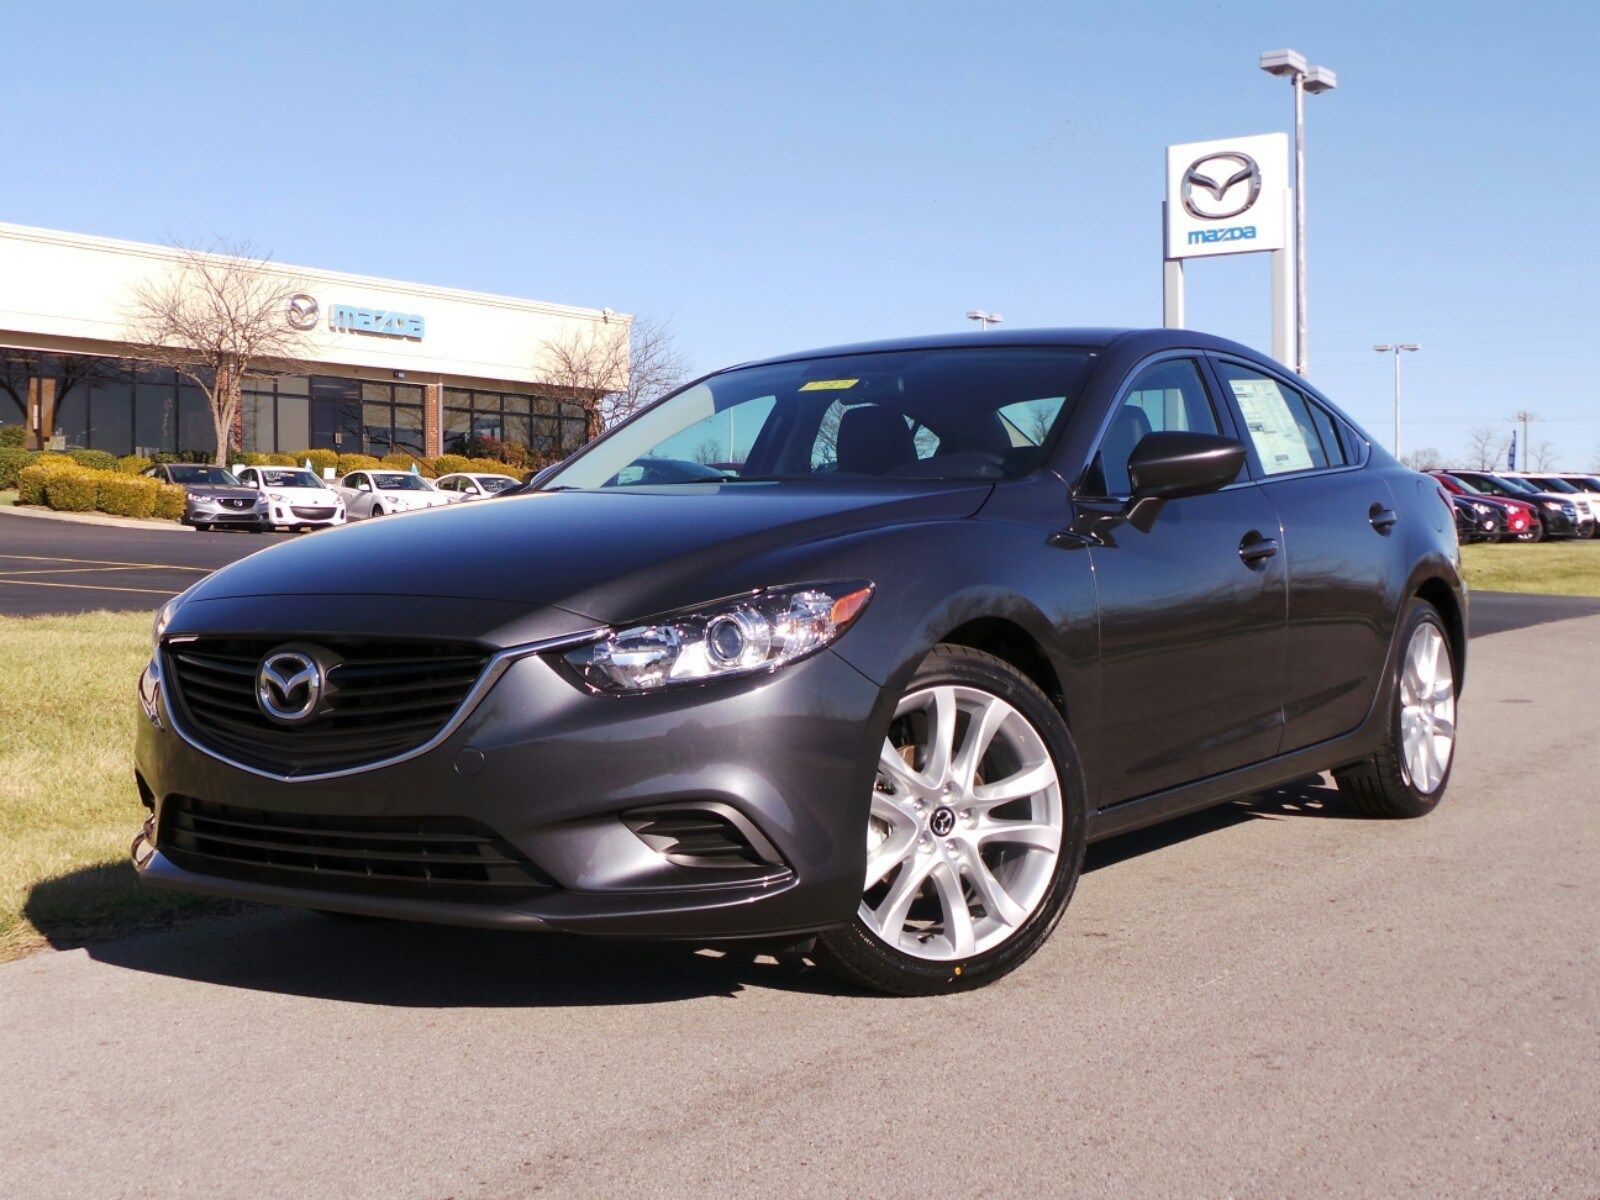 2008 mazda mazda6 review ratings specs prices and photos. Black Bedroom Furniture Sets. Home Design Ideas